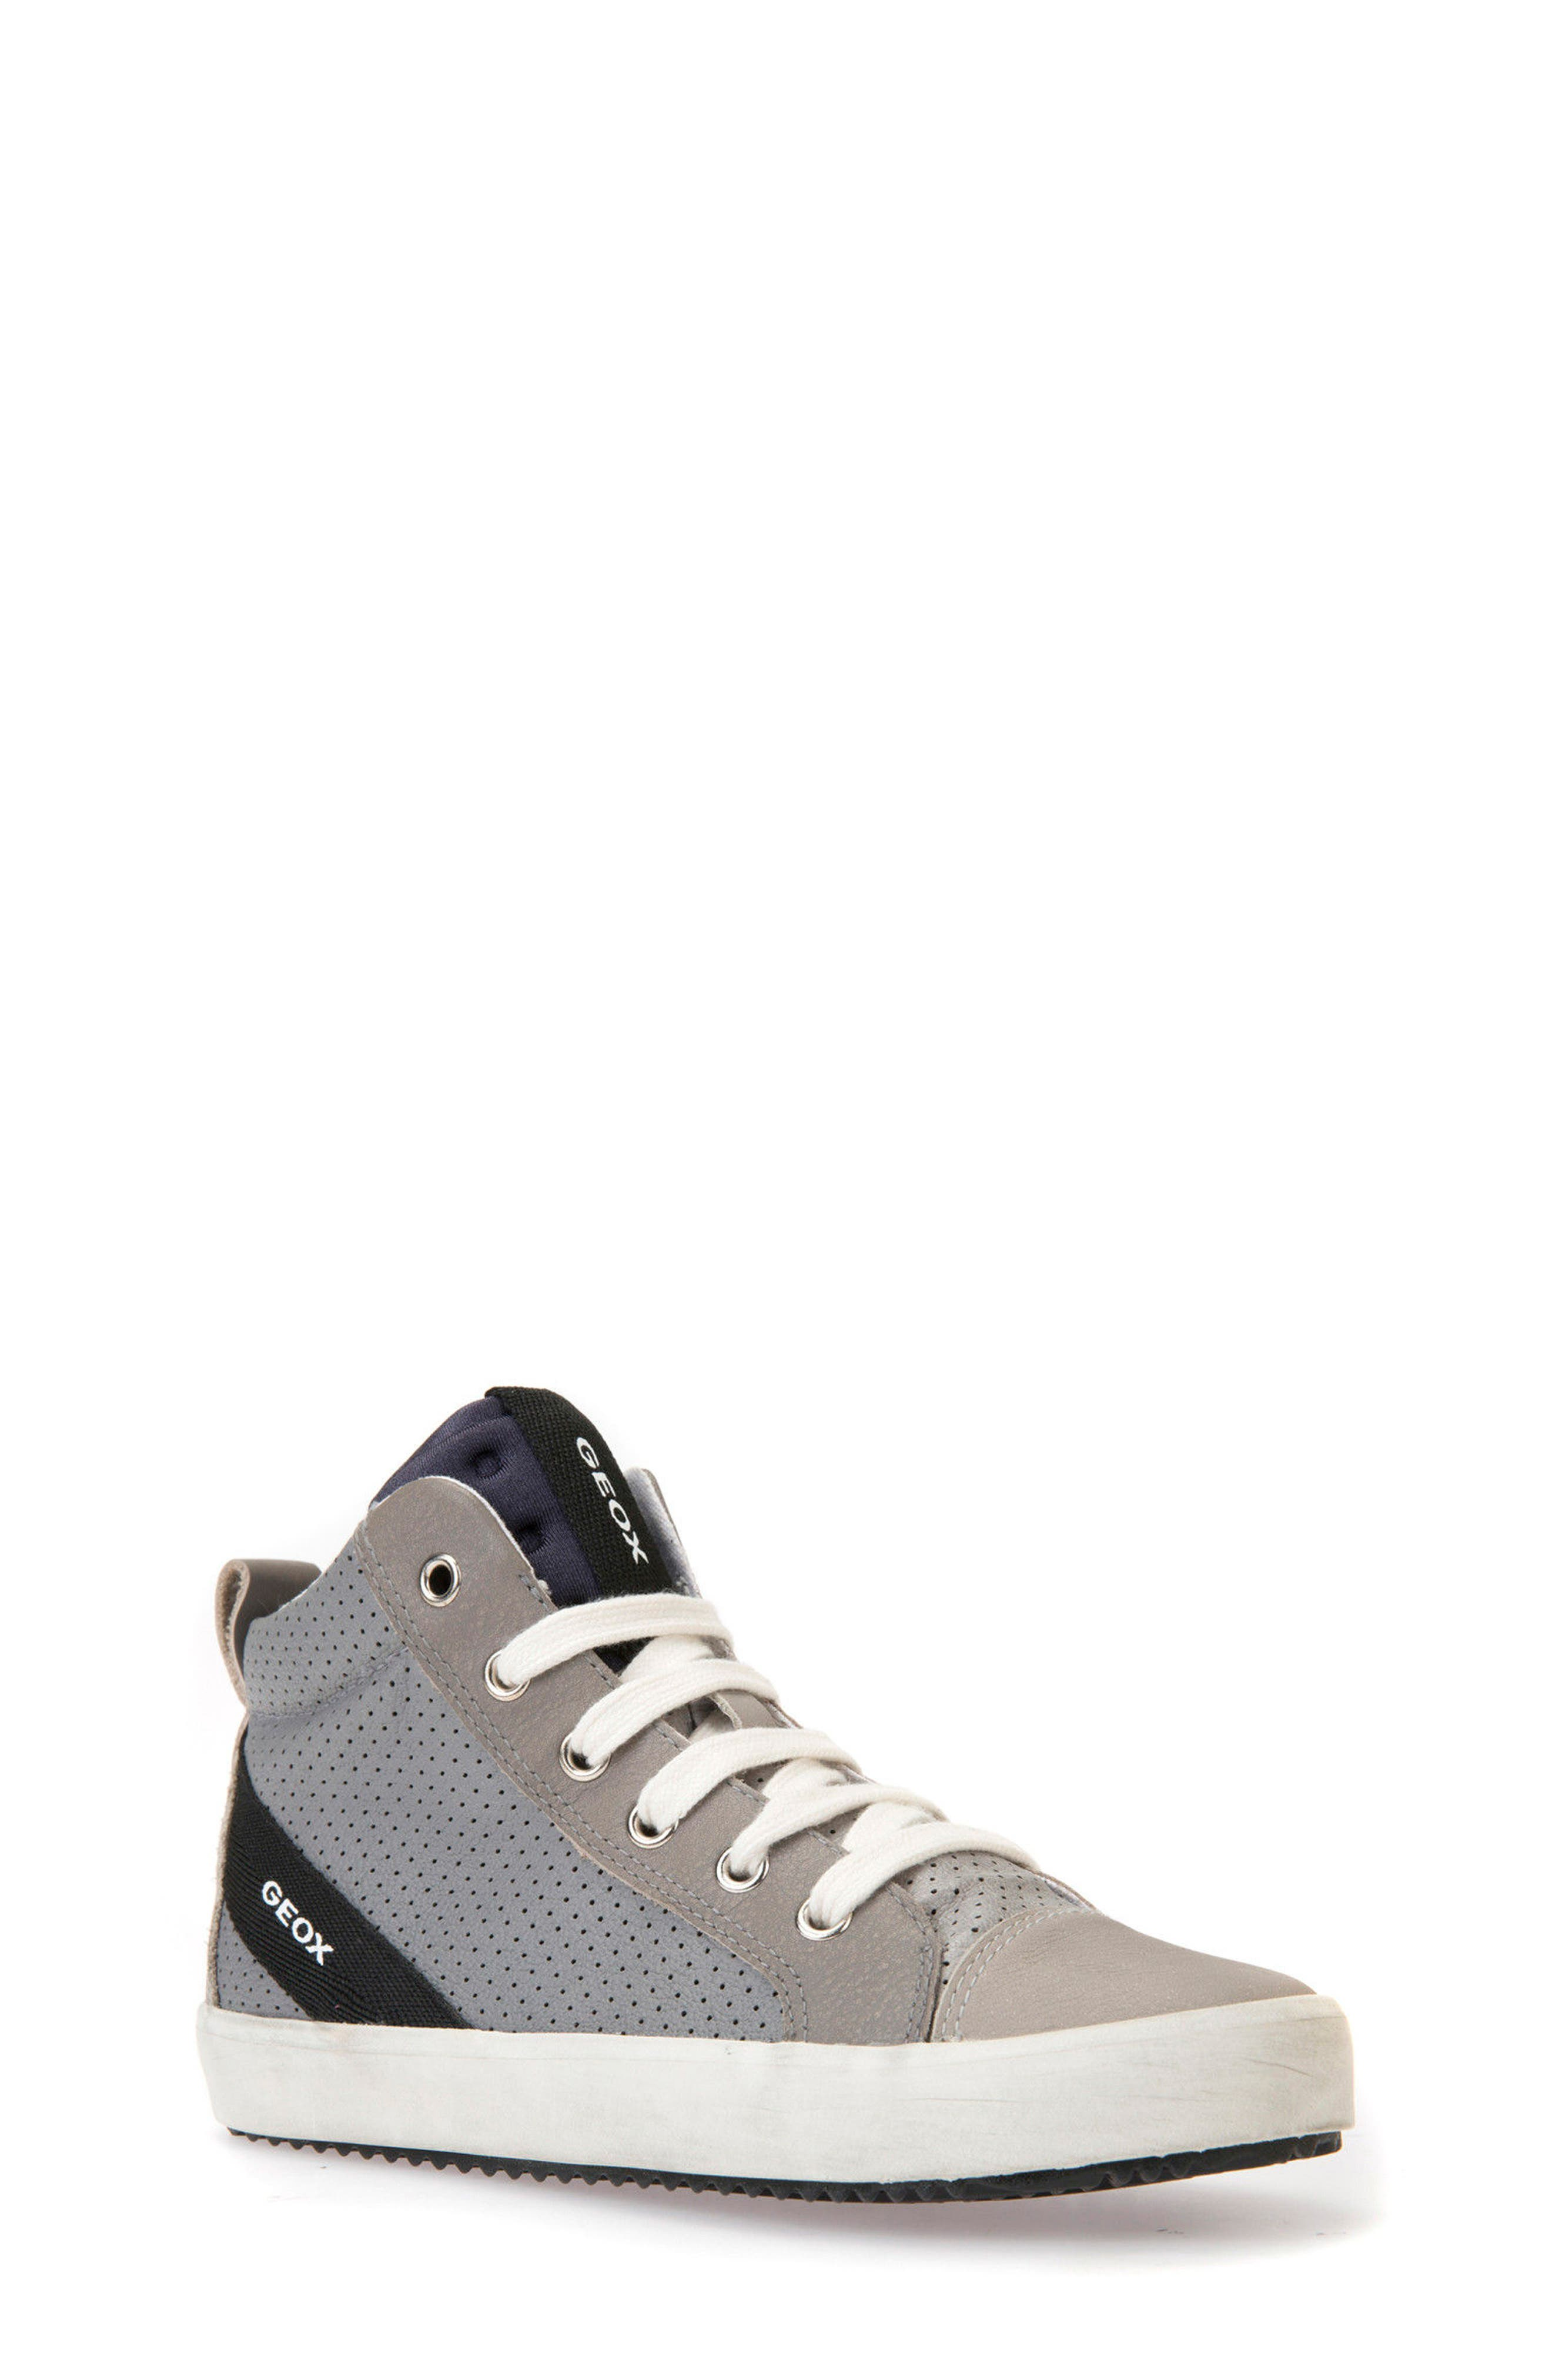 Alonisso Perforated Mid Top Sneaker,                             Main thumbnail 1, color,                             GREY/ LIGHT GREY